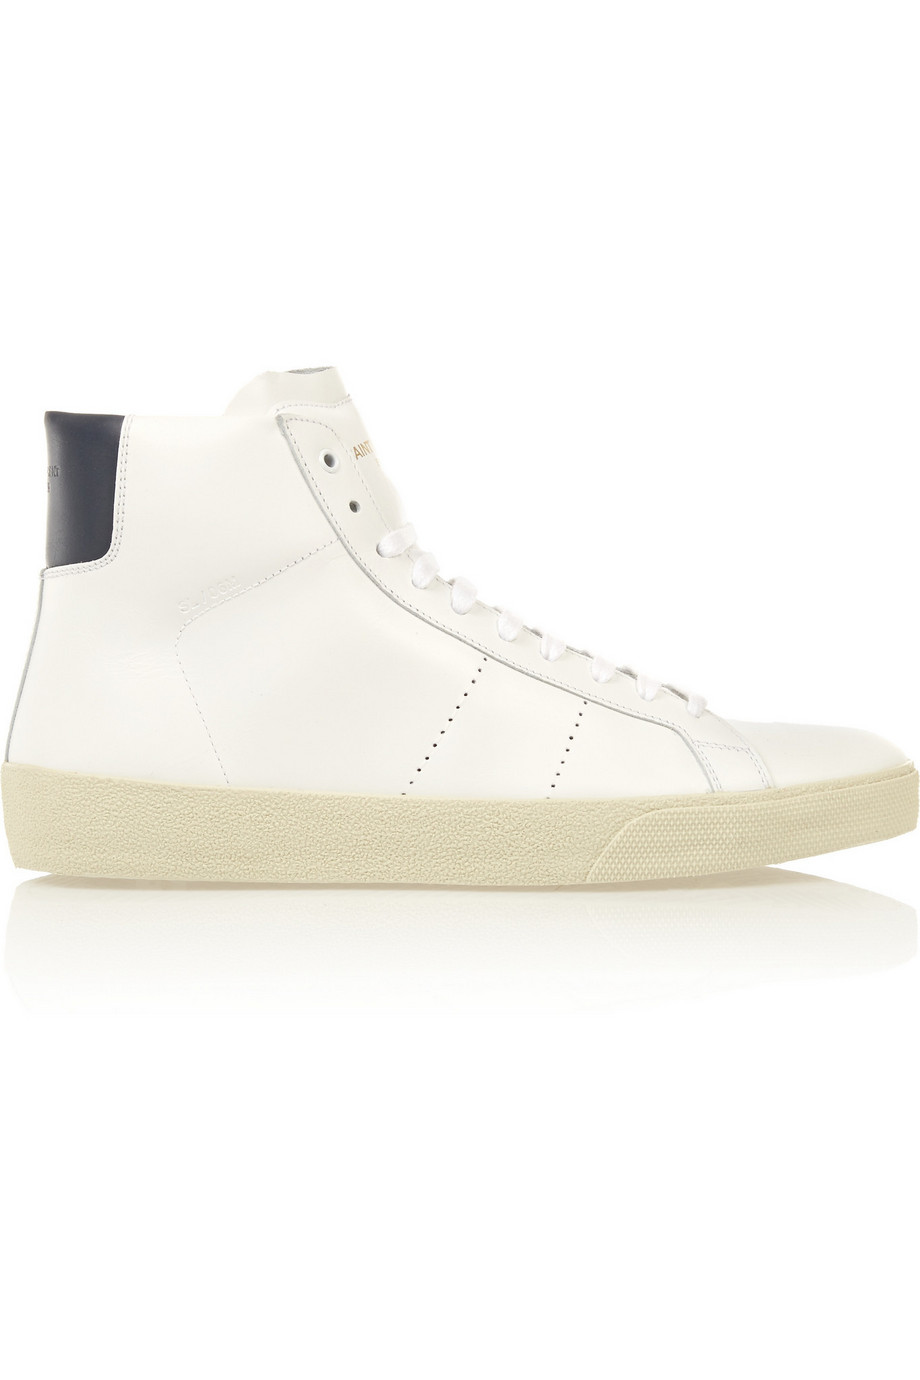 Saint Laurent Court Classic Leather High-Top Sneakers, White, Women's US Size: 8, Size: 38.5